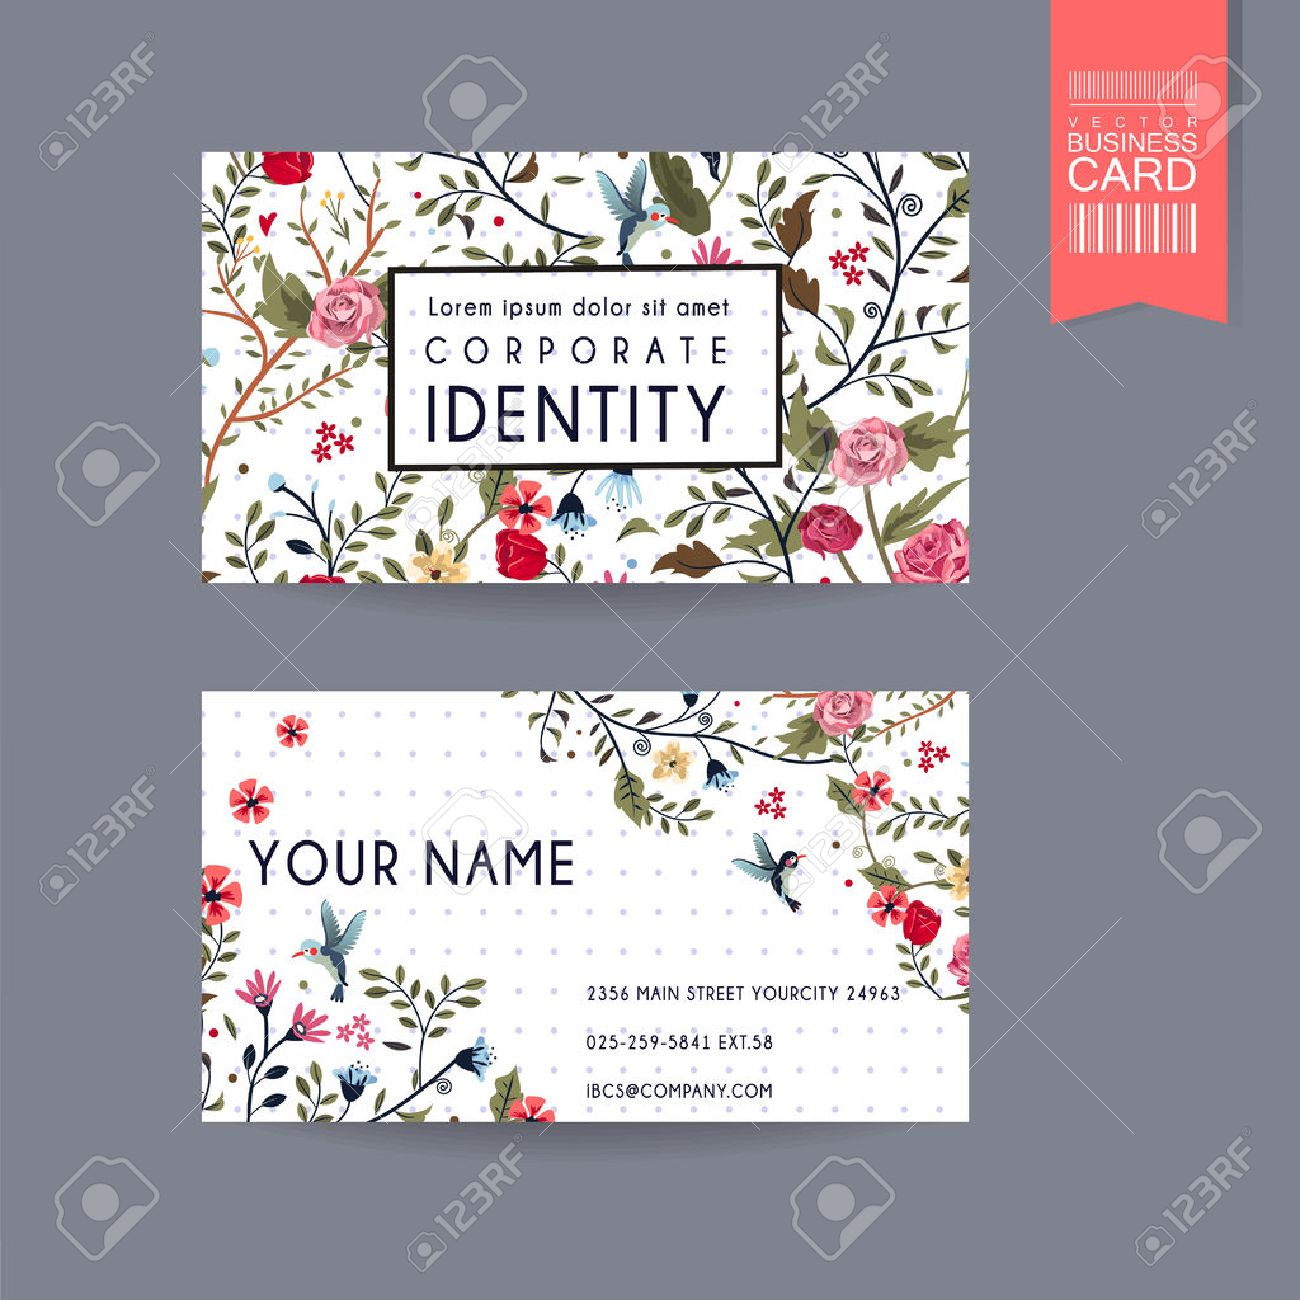 Graceful Business Card Design With Lovely Floral Pattern Over ...